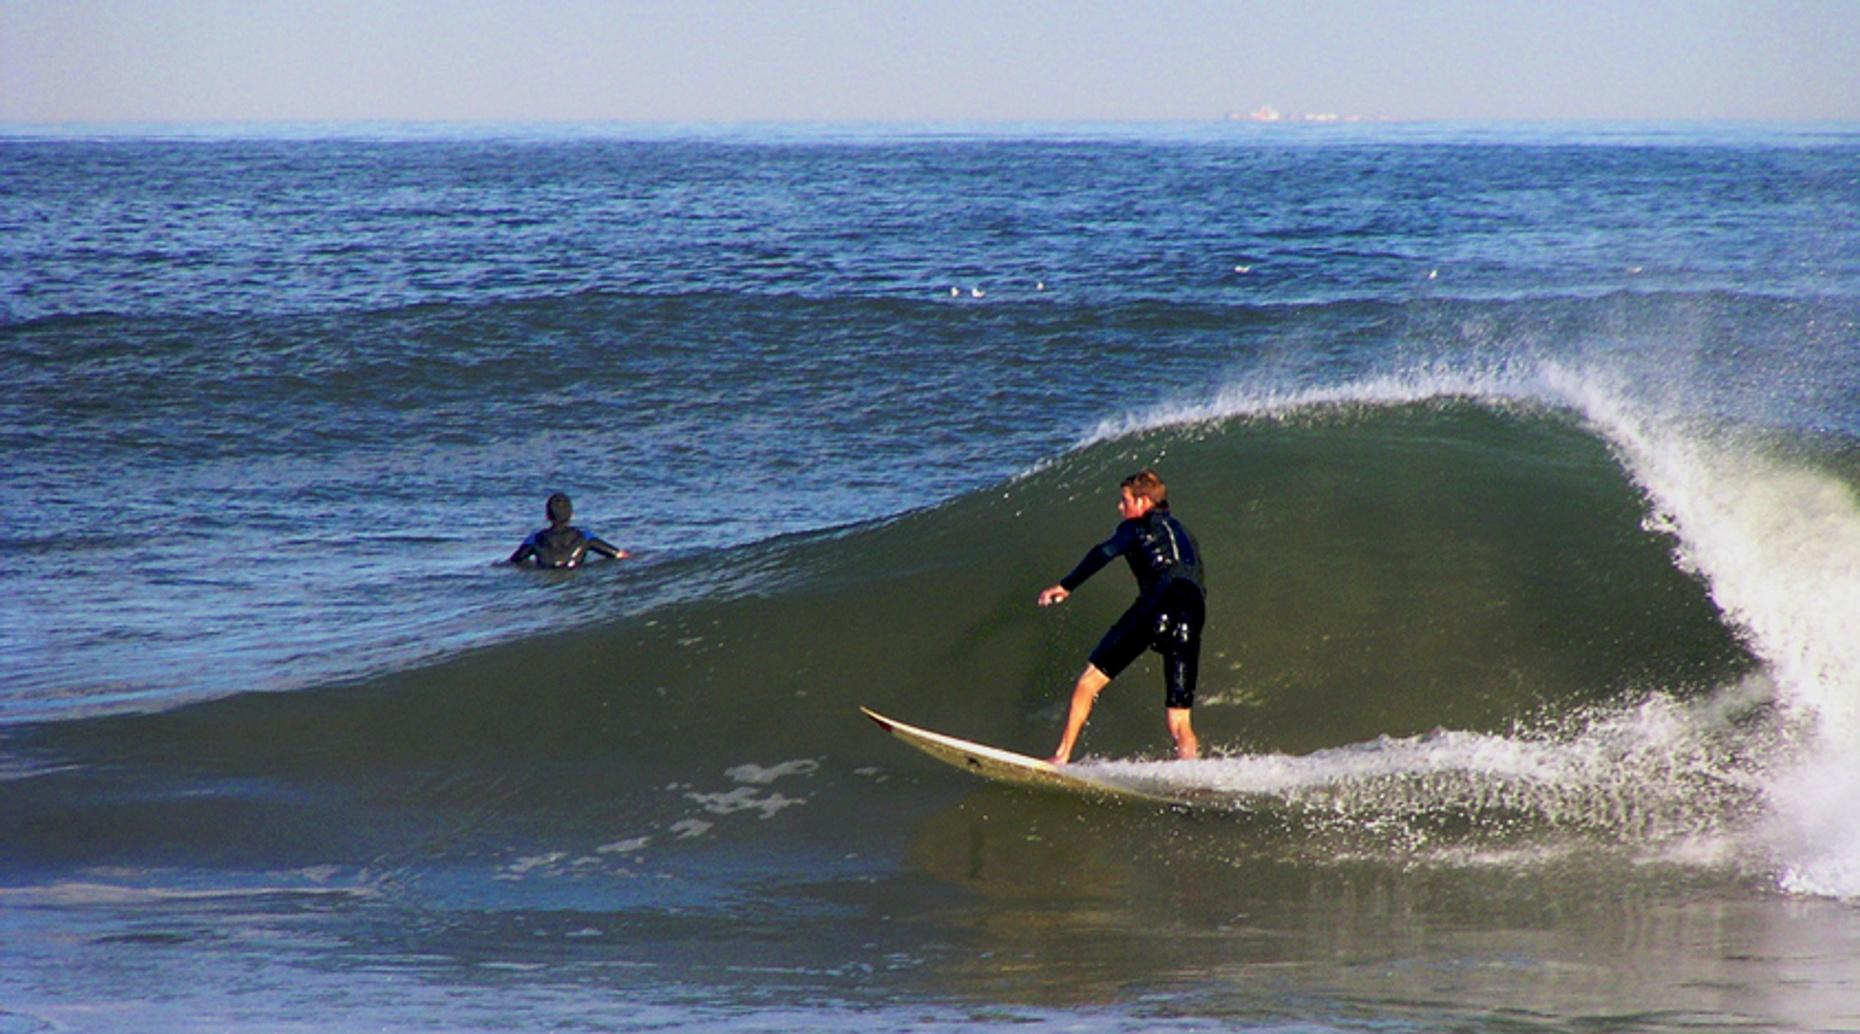 Surfboard Rental at Carmel-By-The-Sea